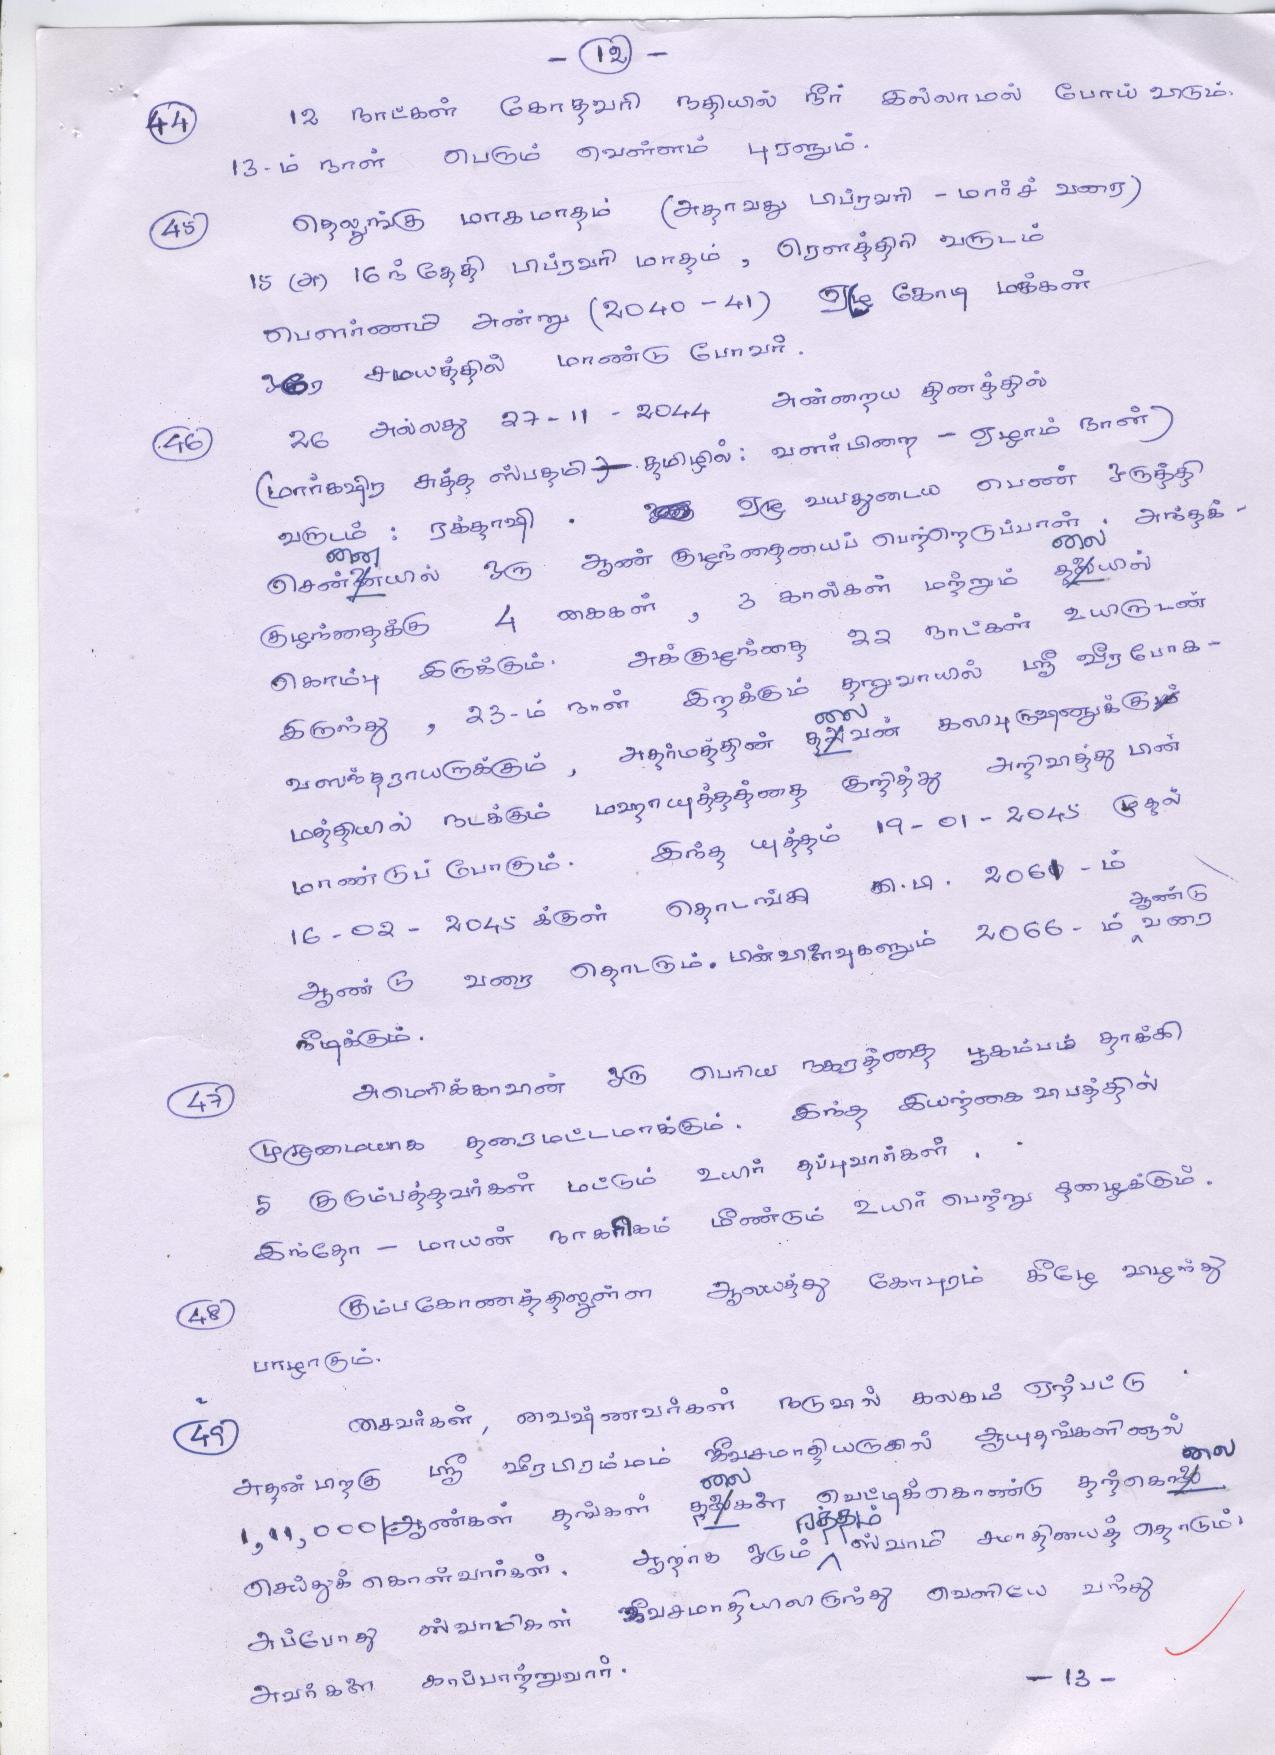 Kalagnanam(Prophecies),in Tamil, of Sri Pothuluri Veera